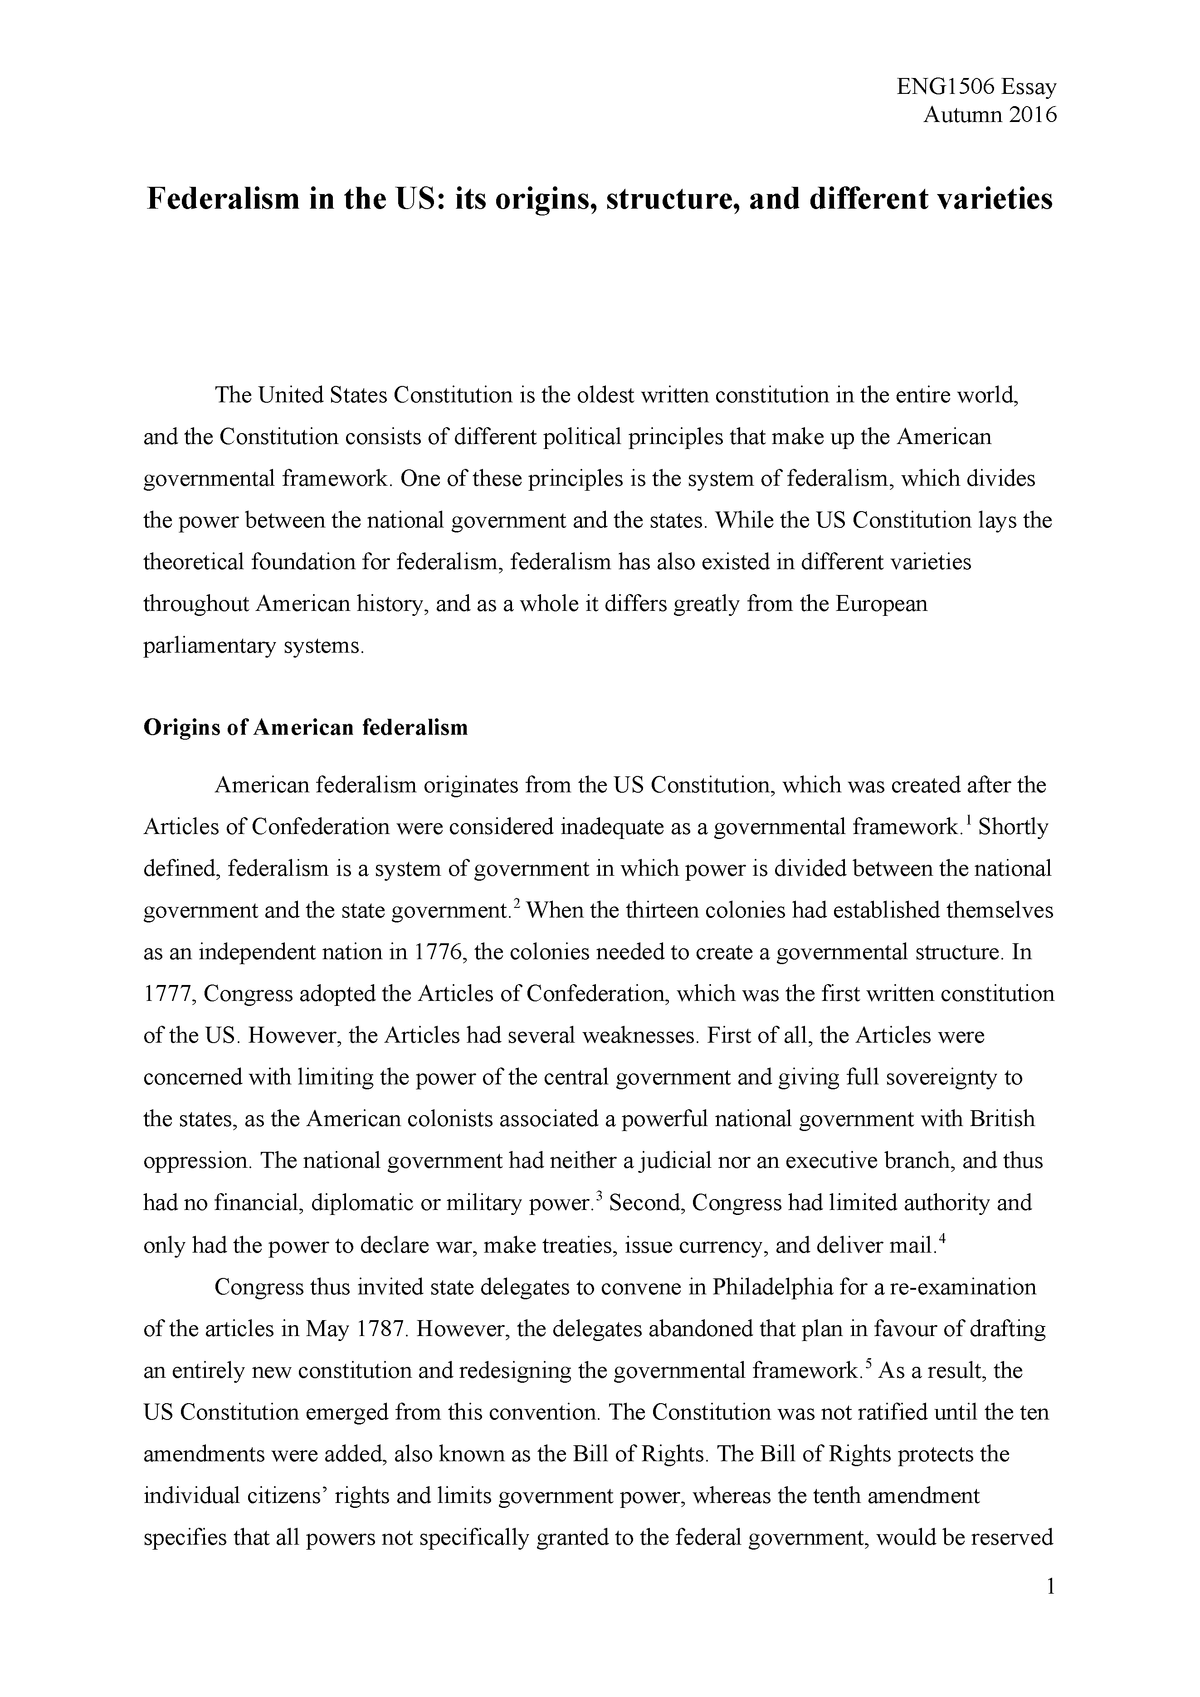 Article confederation essay